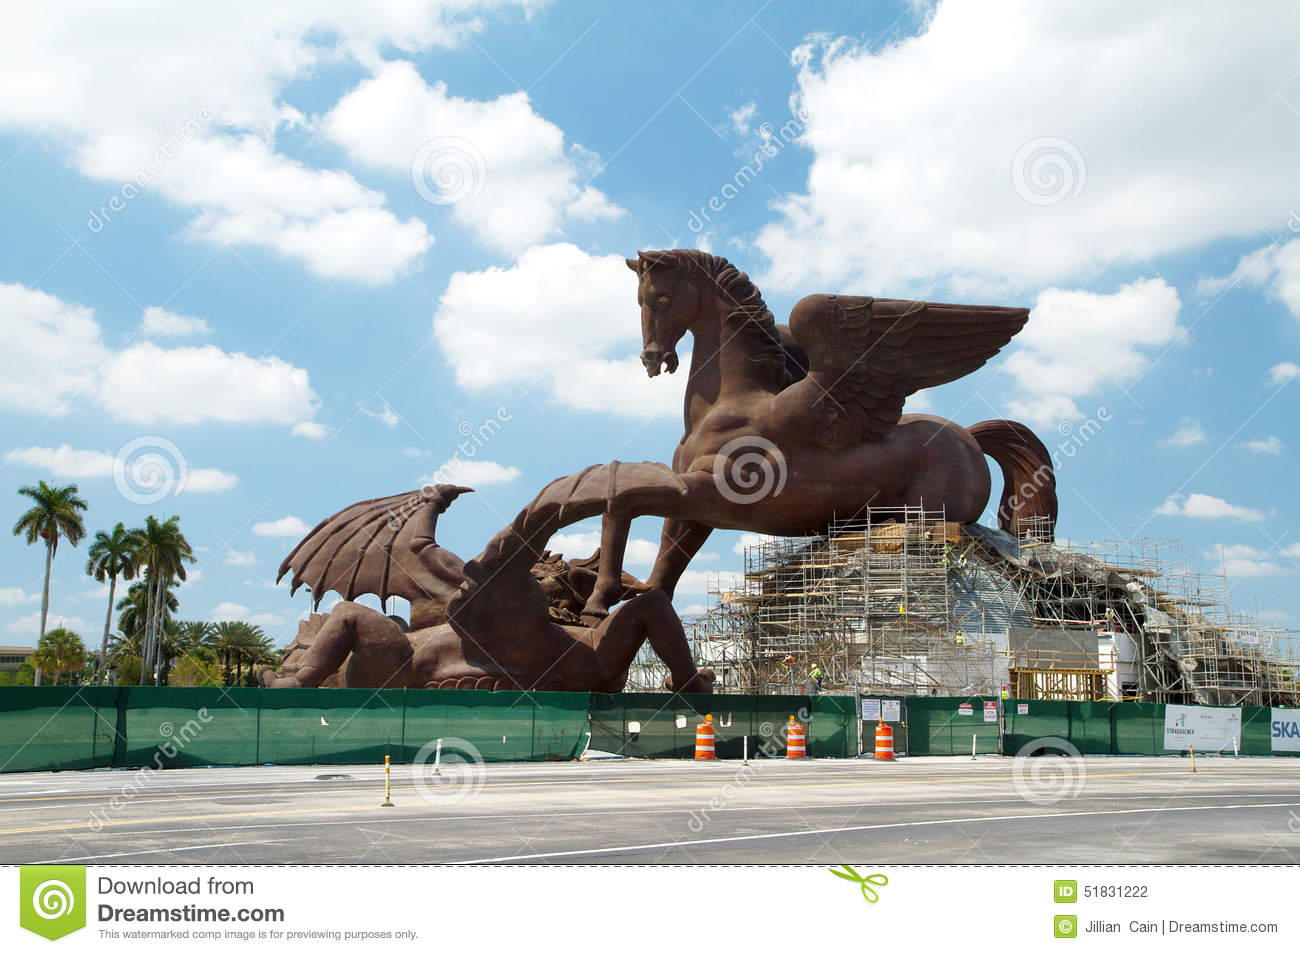 Giant Dragon Statue Gigantic Statute Of Pegasus Slaying The Dragon Editorial